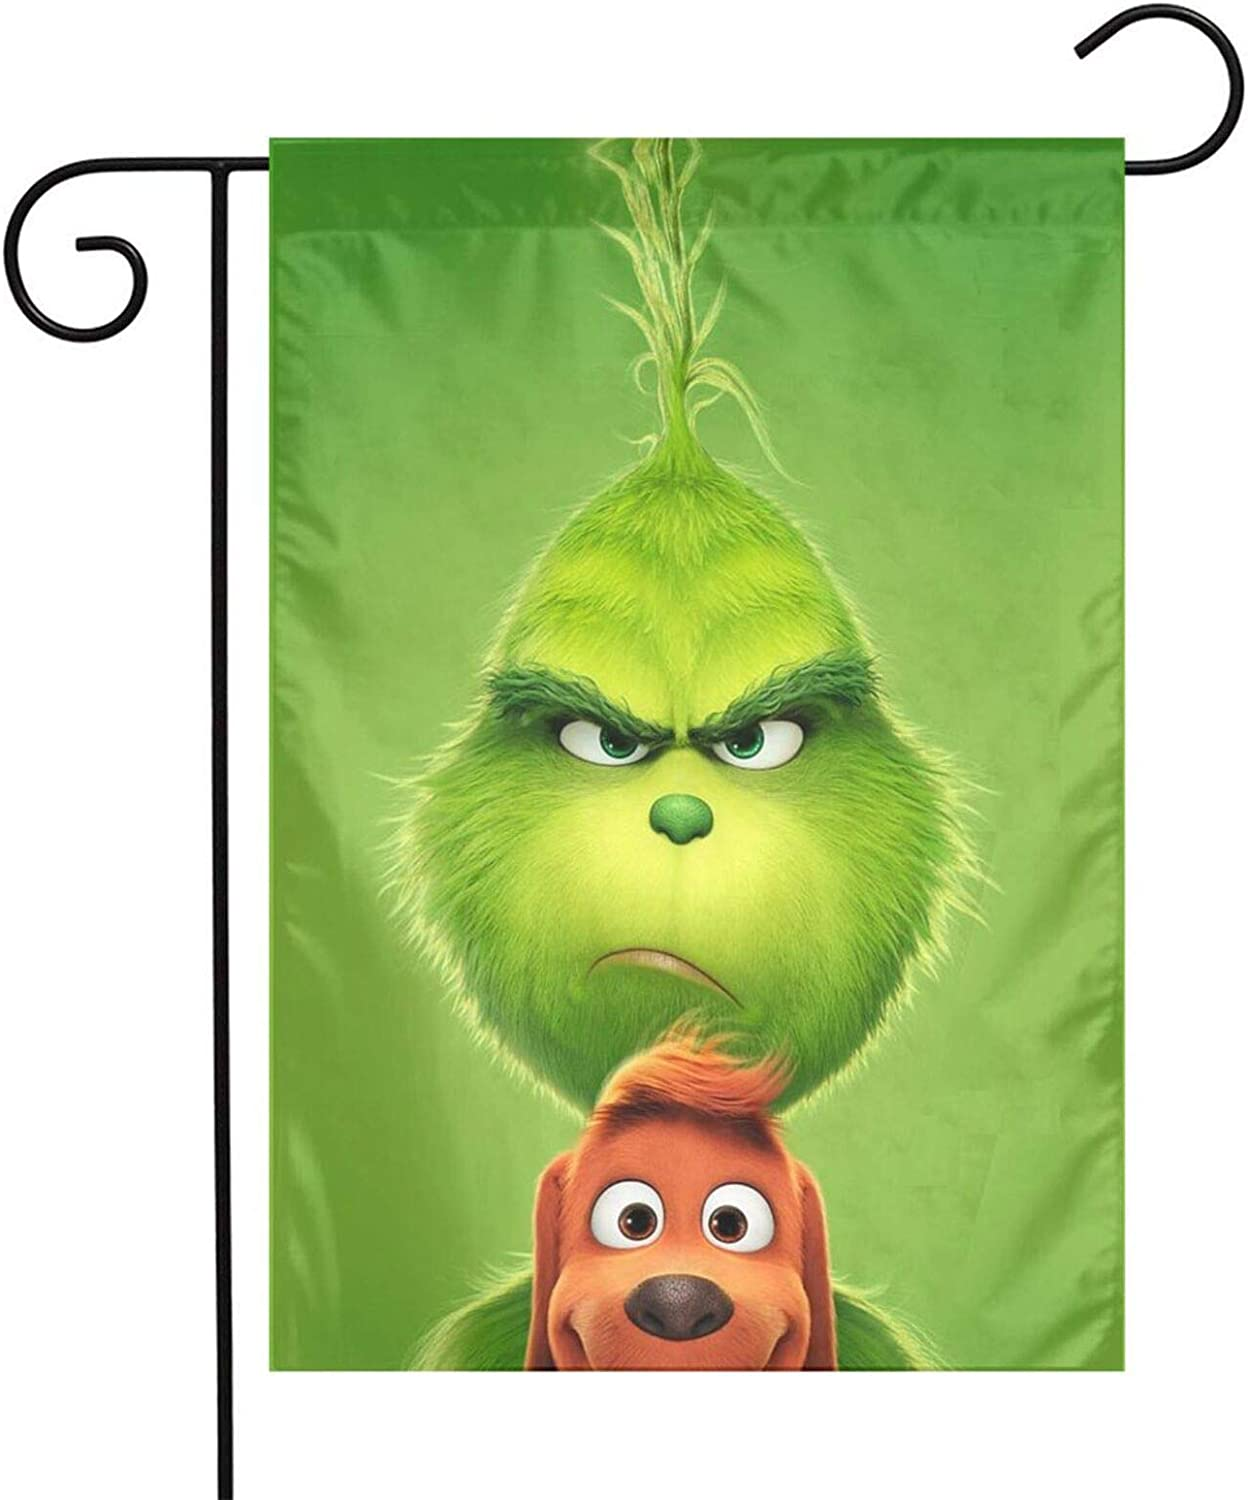 Sadie Mae Fall Garden Flag Double Sided, The Grinch Stole Christmas Home Garden Flags with for Garden Farm House Burlap Yard Garden Outdoor Decorations(12x18in)